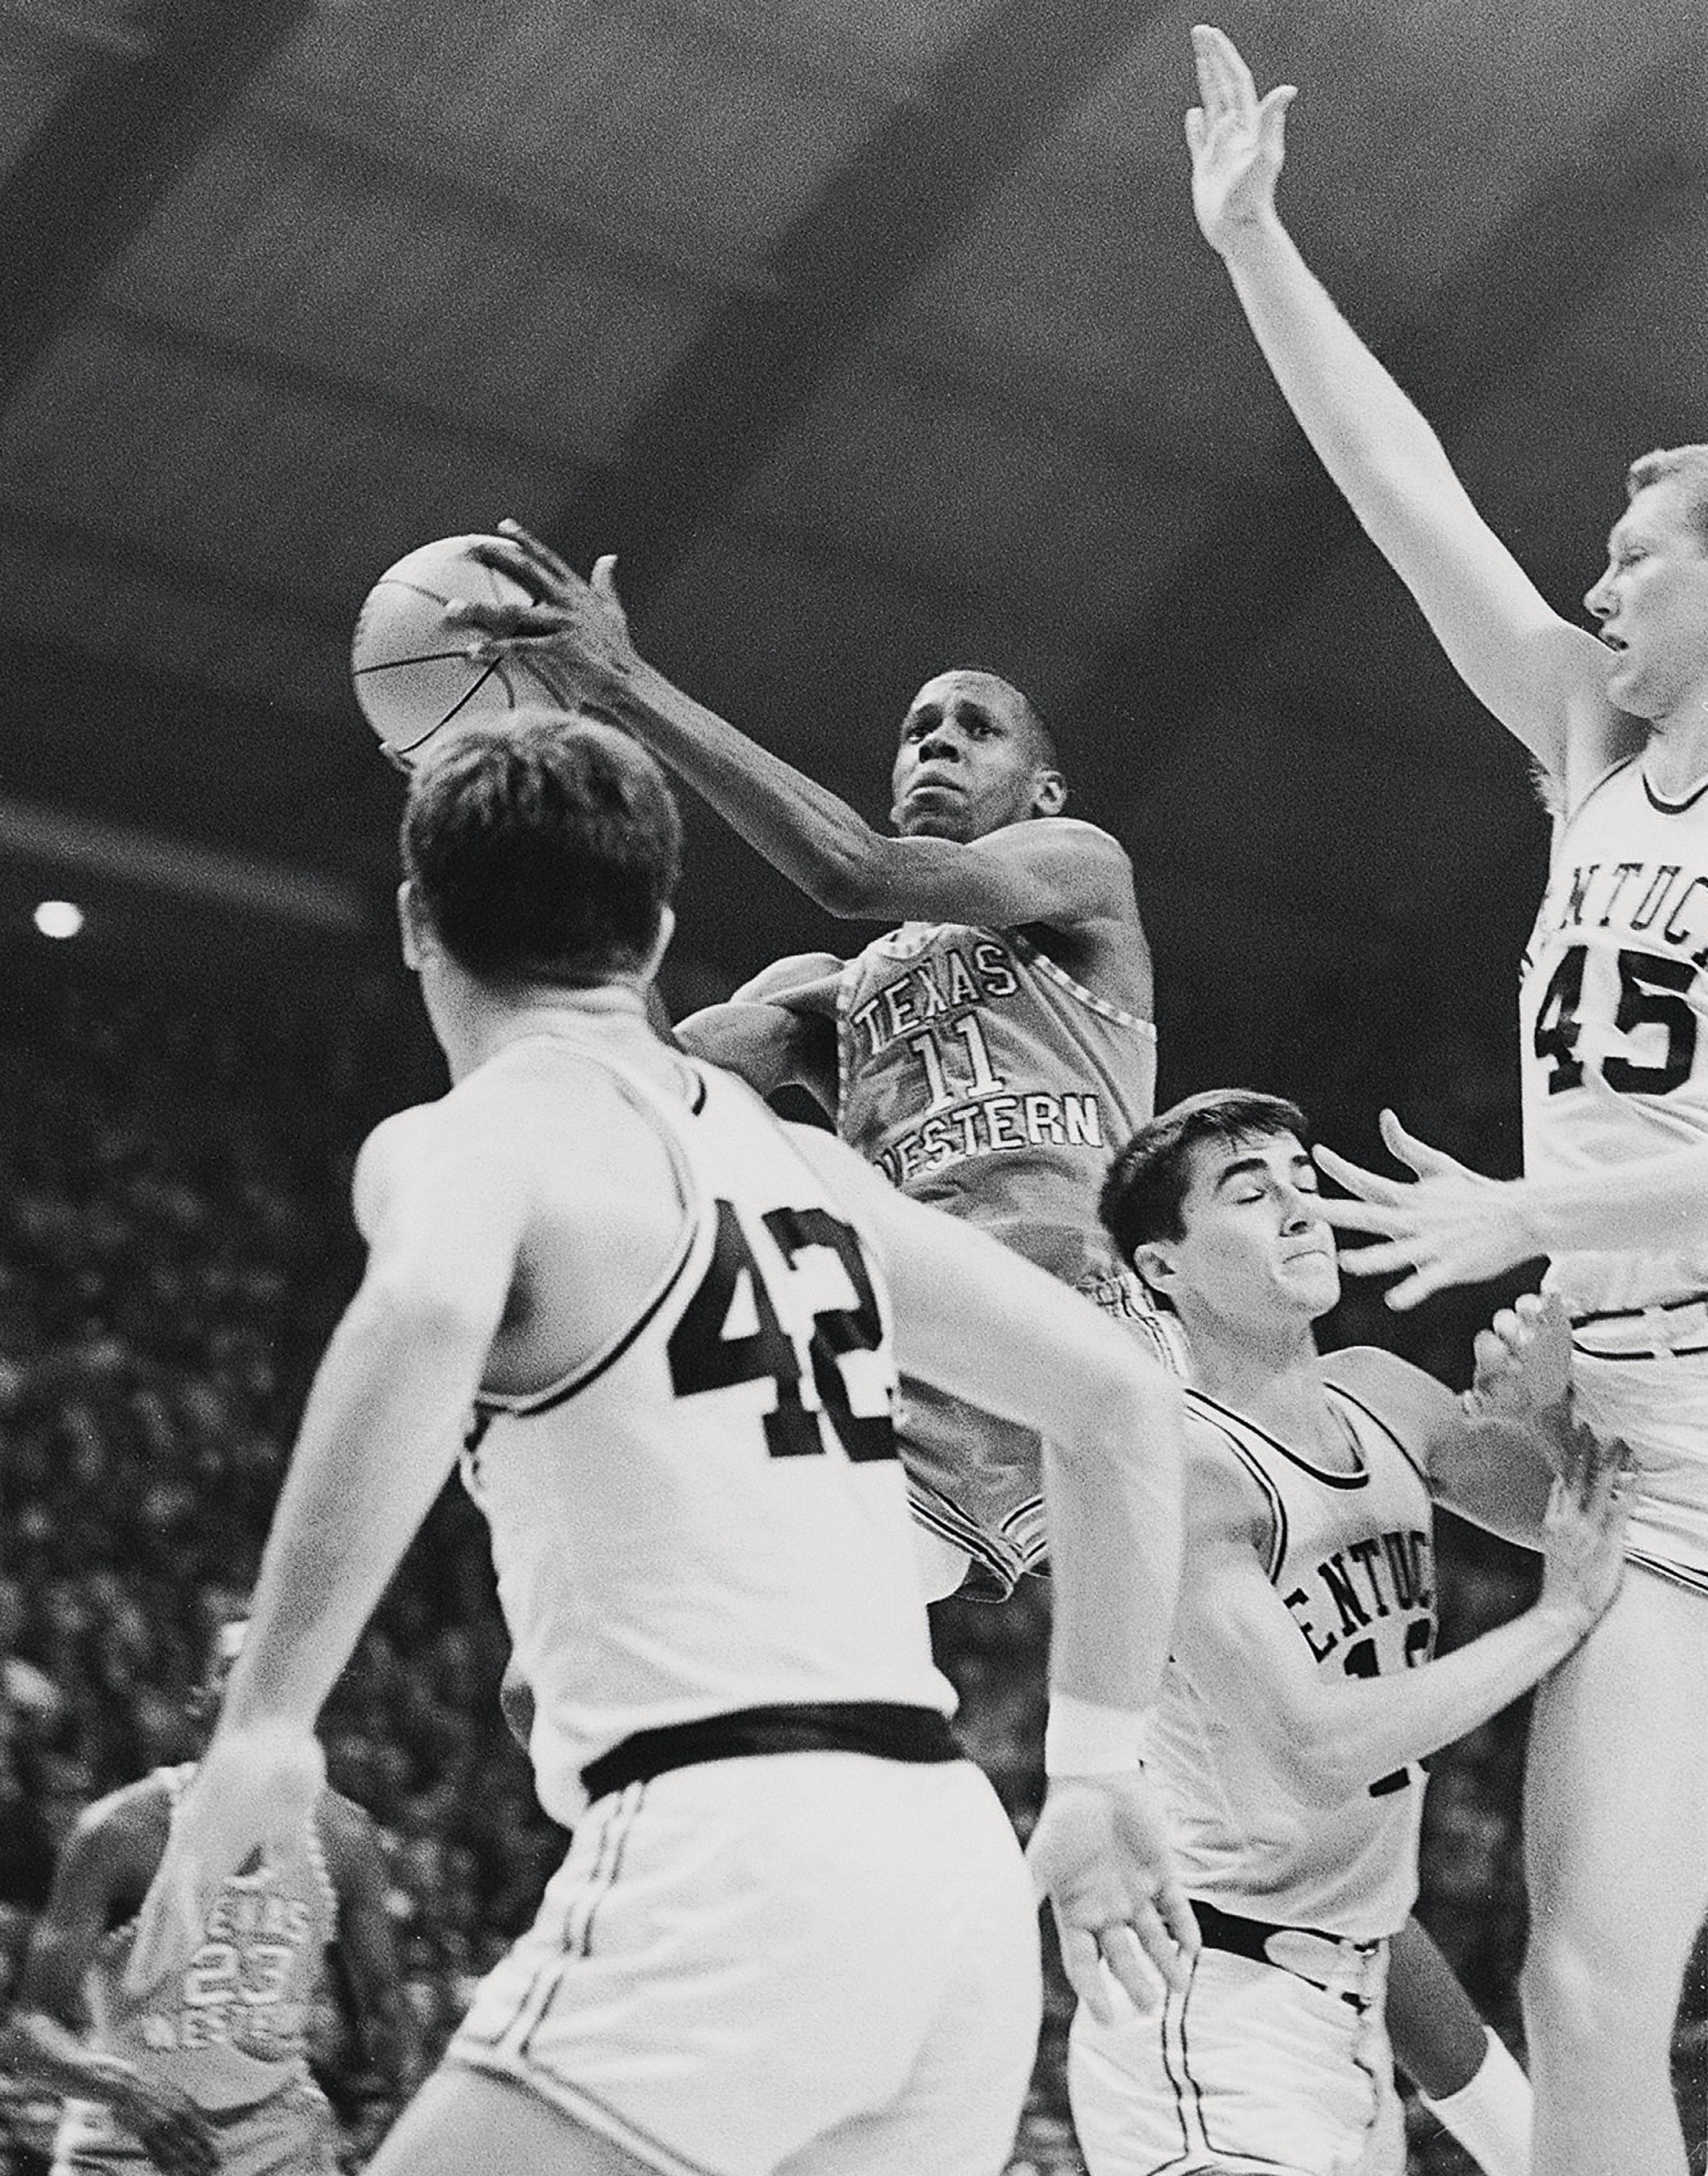 Texas Western Willie Cager, 1966 NCAA National Championship